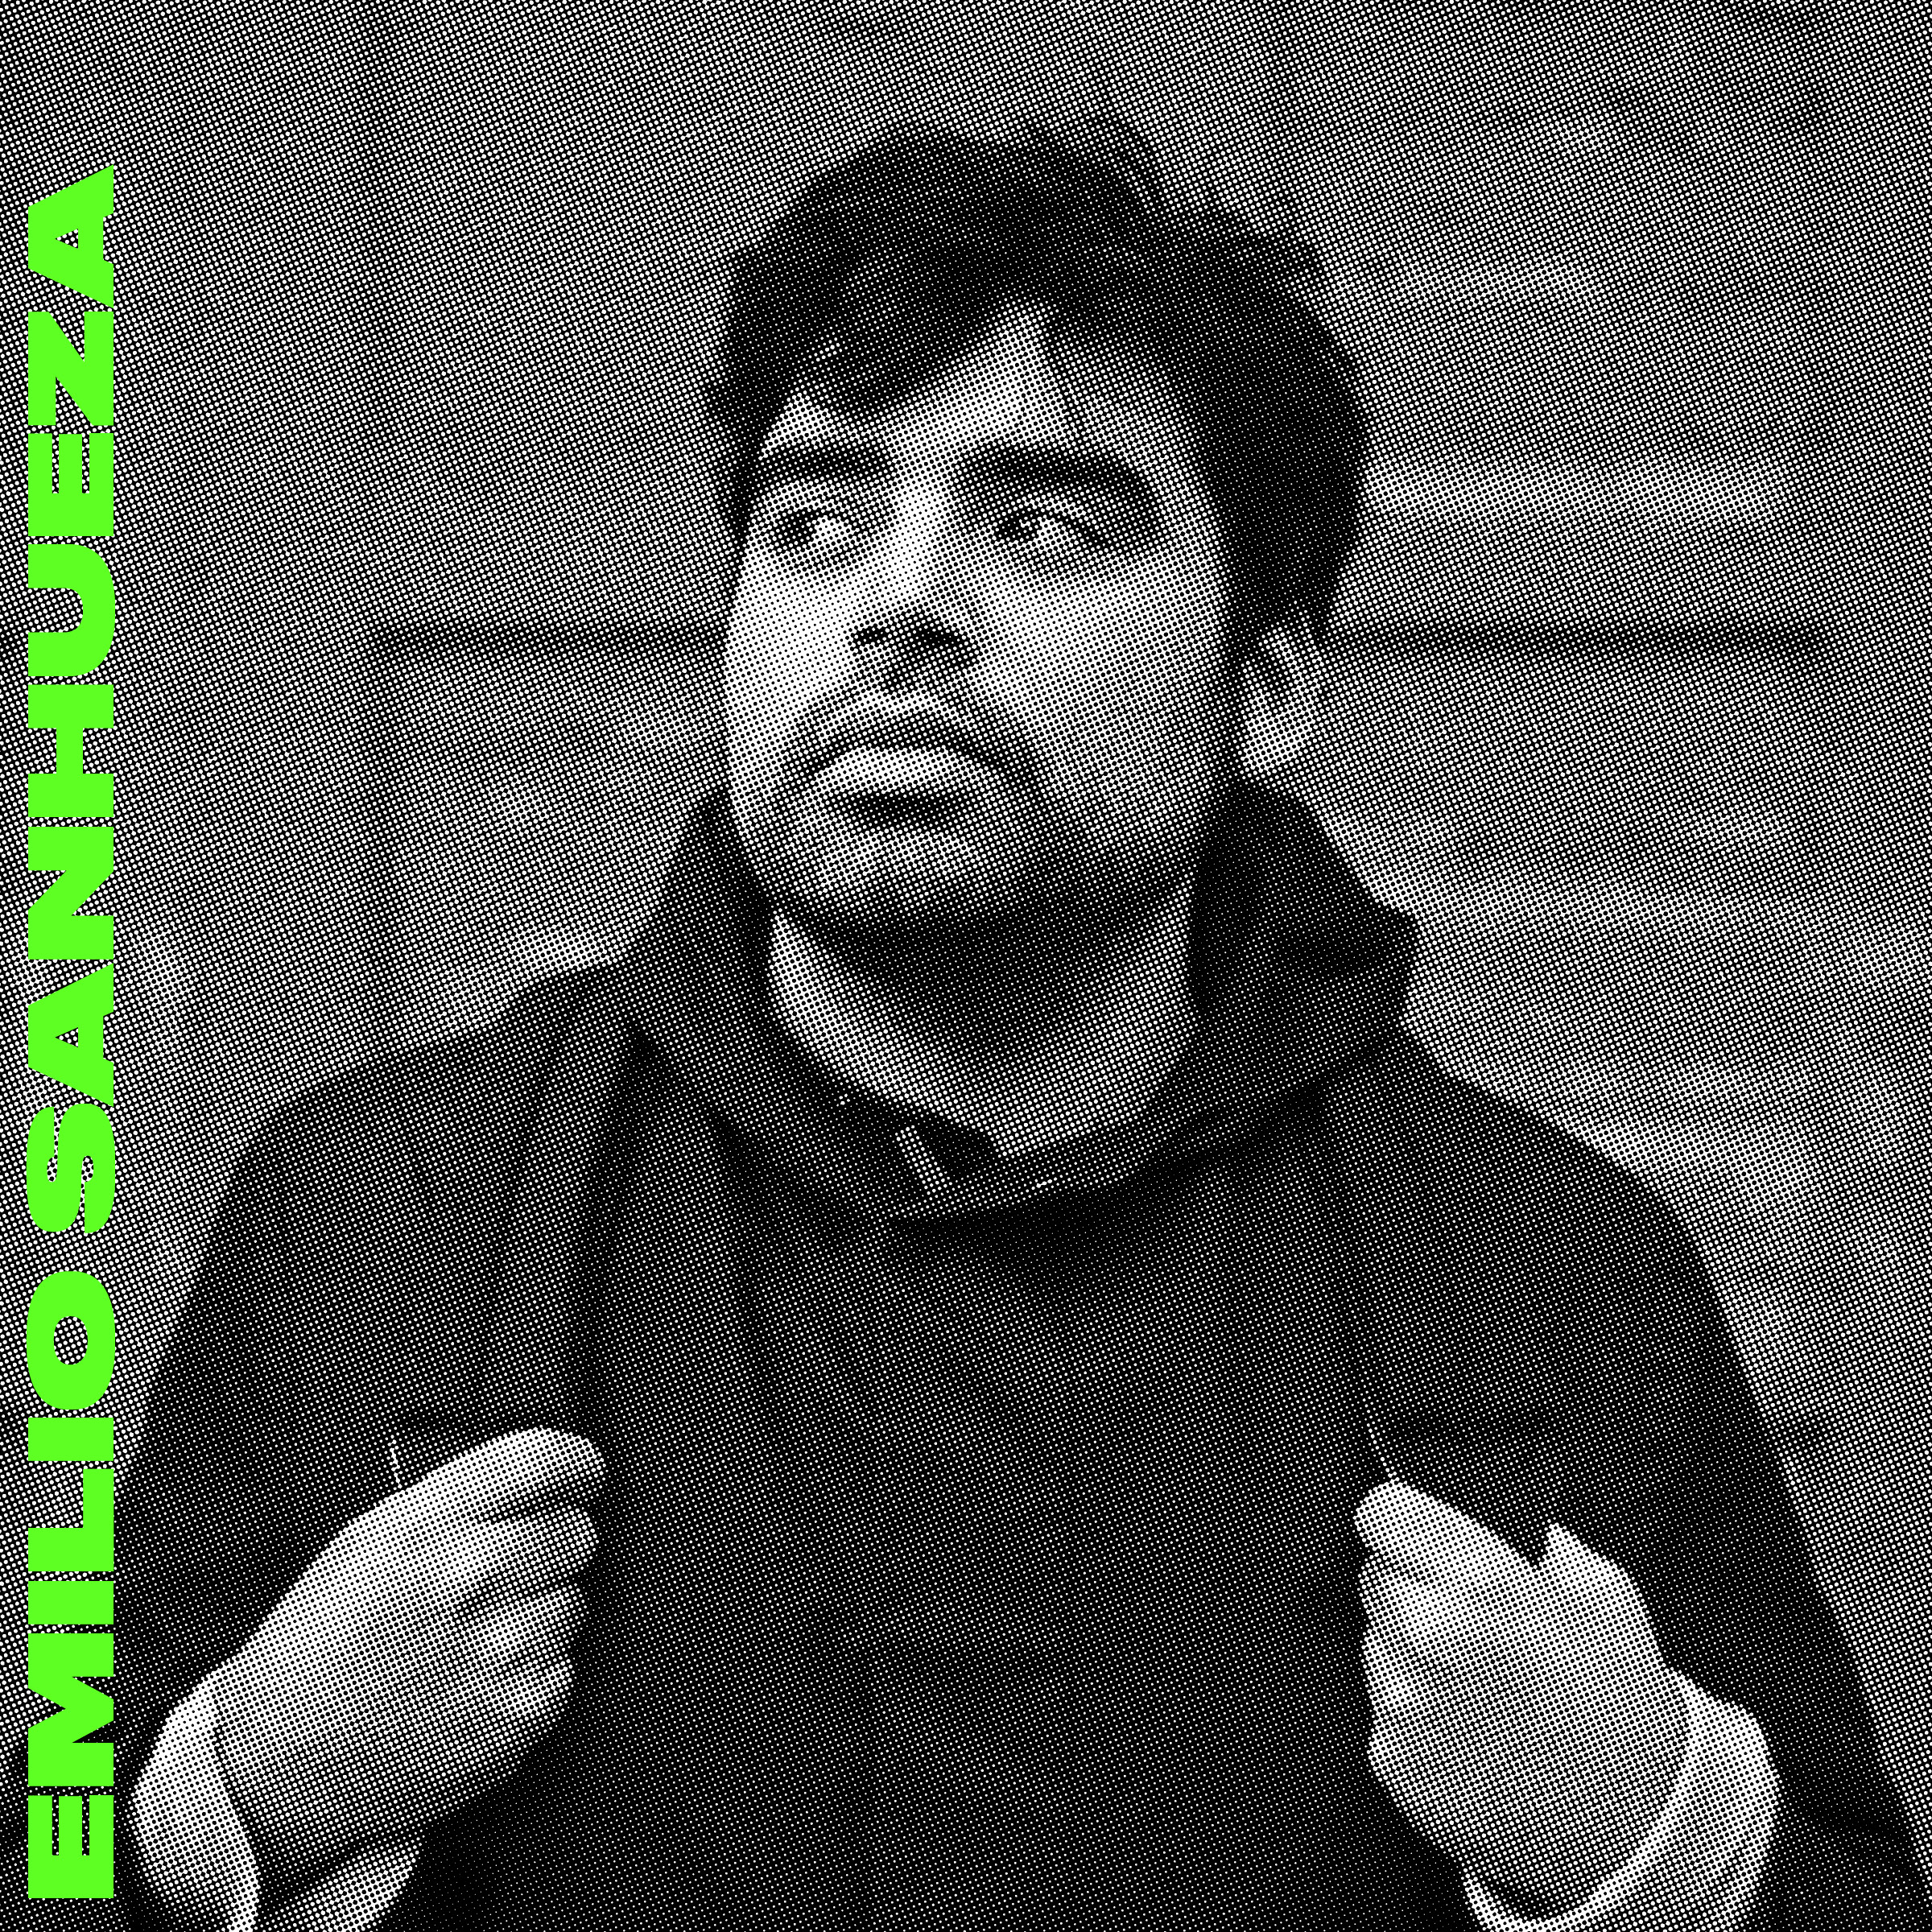 Emilio Sanhueza - Emilio Sanhueza is a former commentator and reviewer in the Norwegian newpaper Bergens Tidende. He has run the record label 'Nabovarsel' and currently works for the BIT20 Ensemble. He also holds a Master of Literature from UiB.